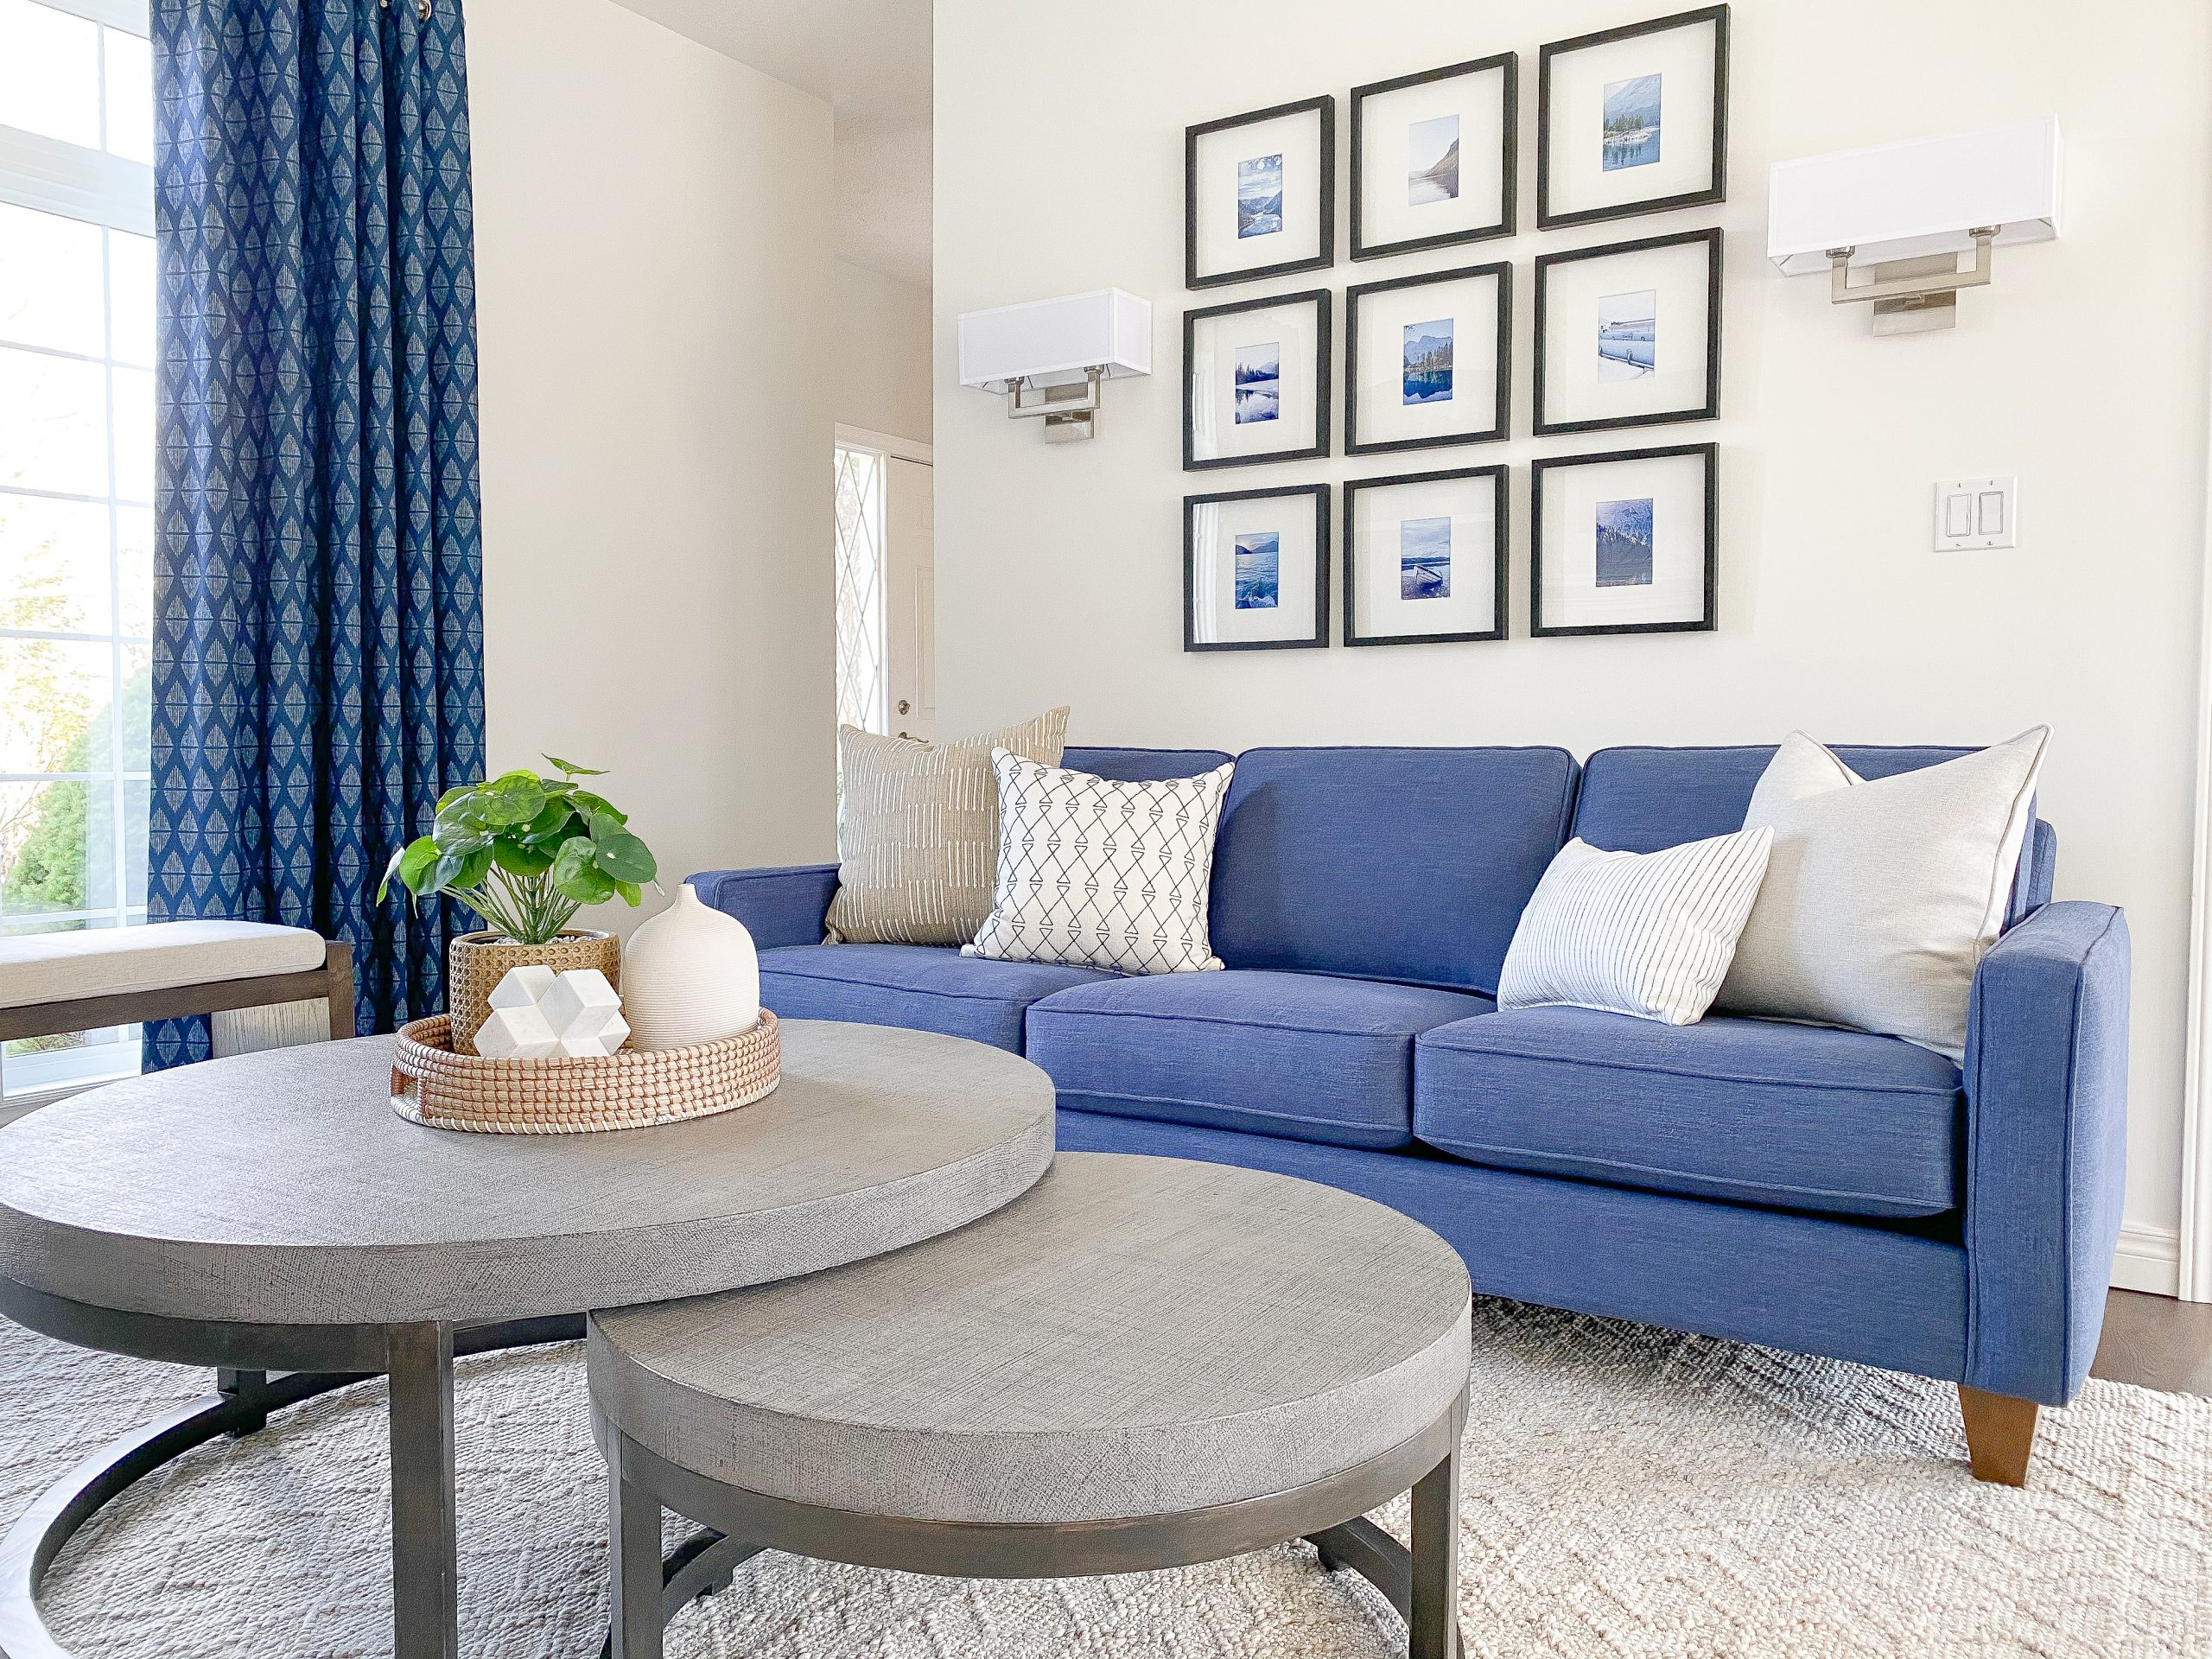 Blue sofa and gallery wall lakeside retreat transformation in Chatham Ontario